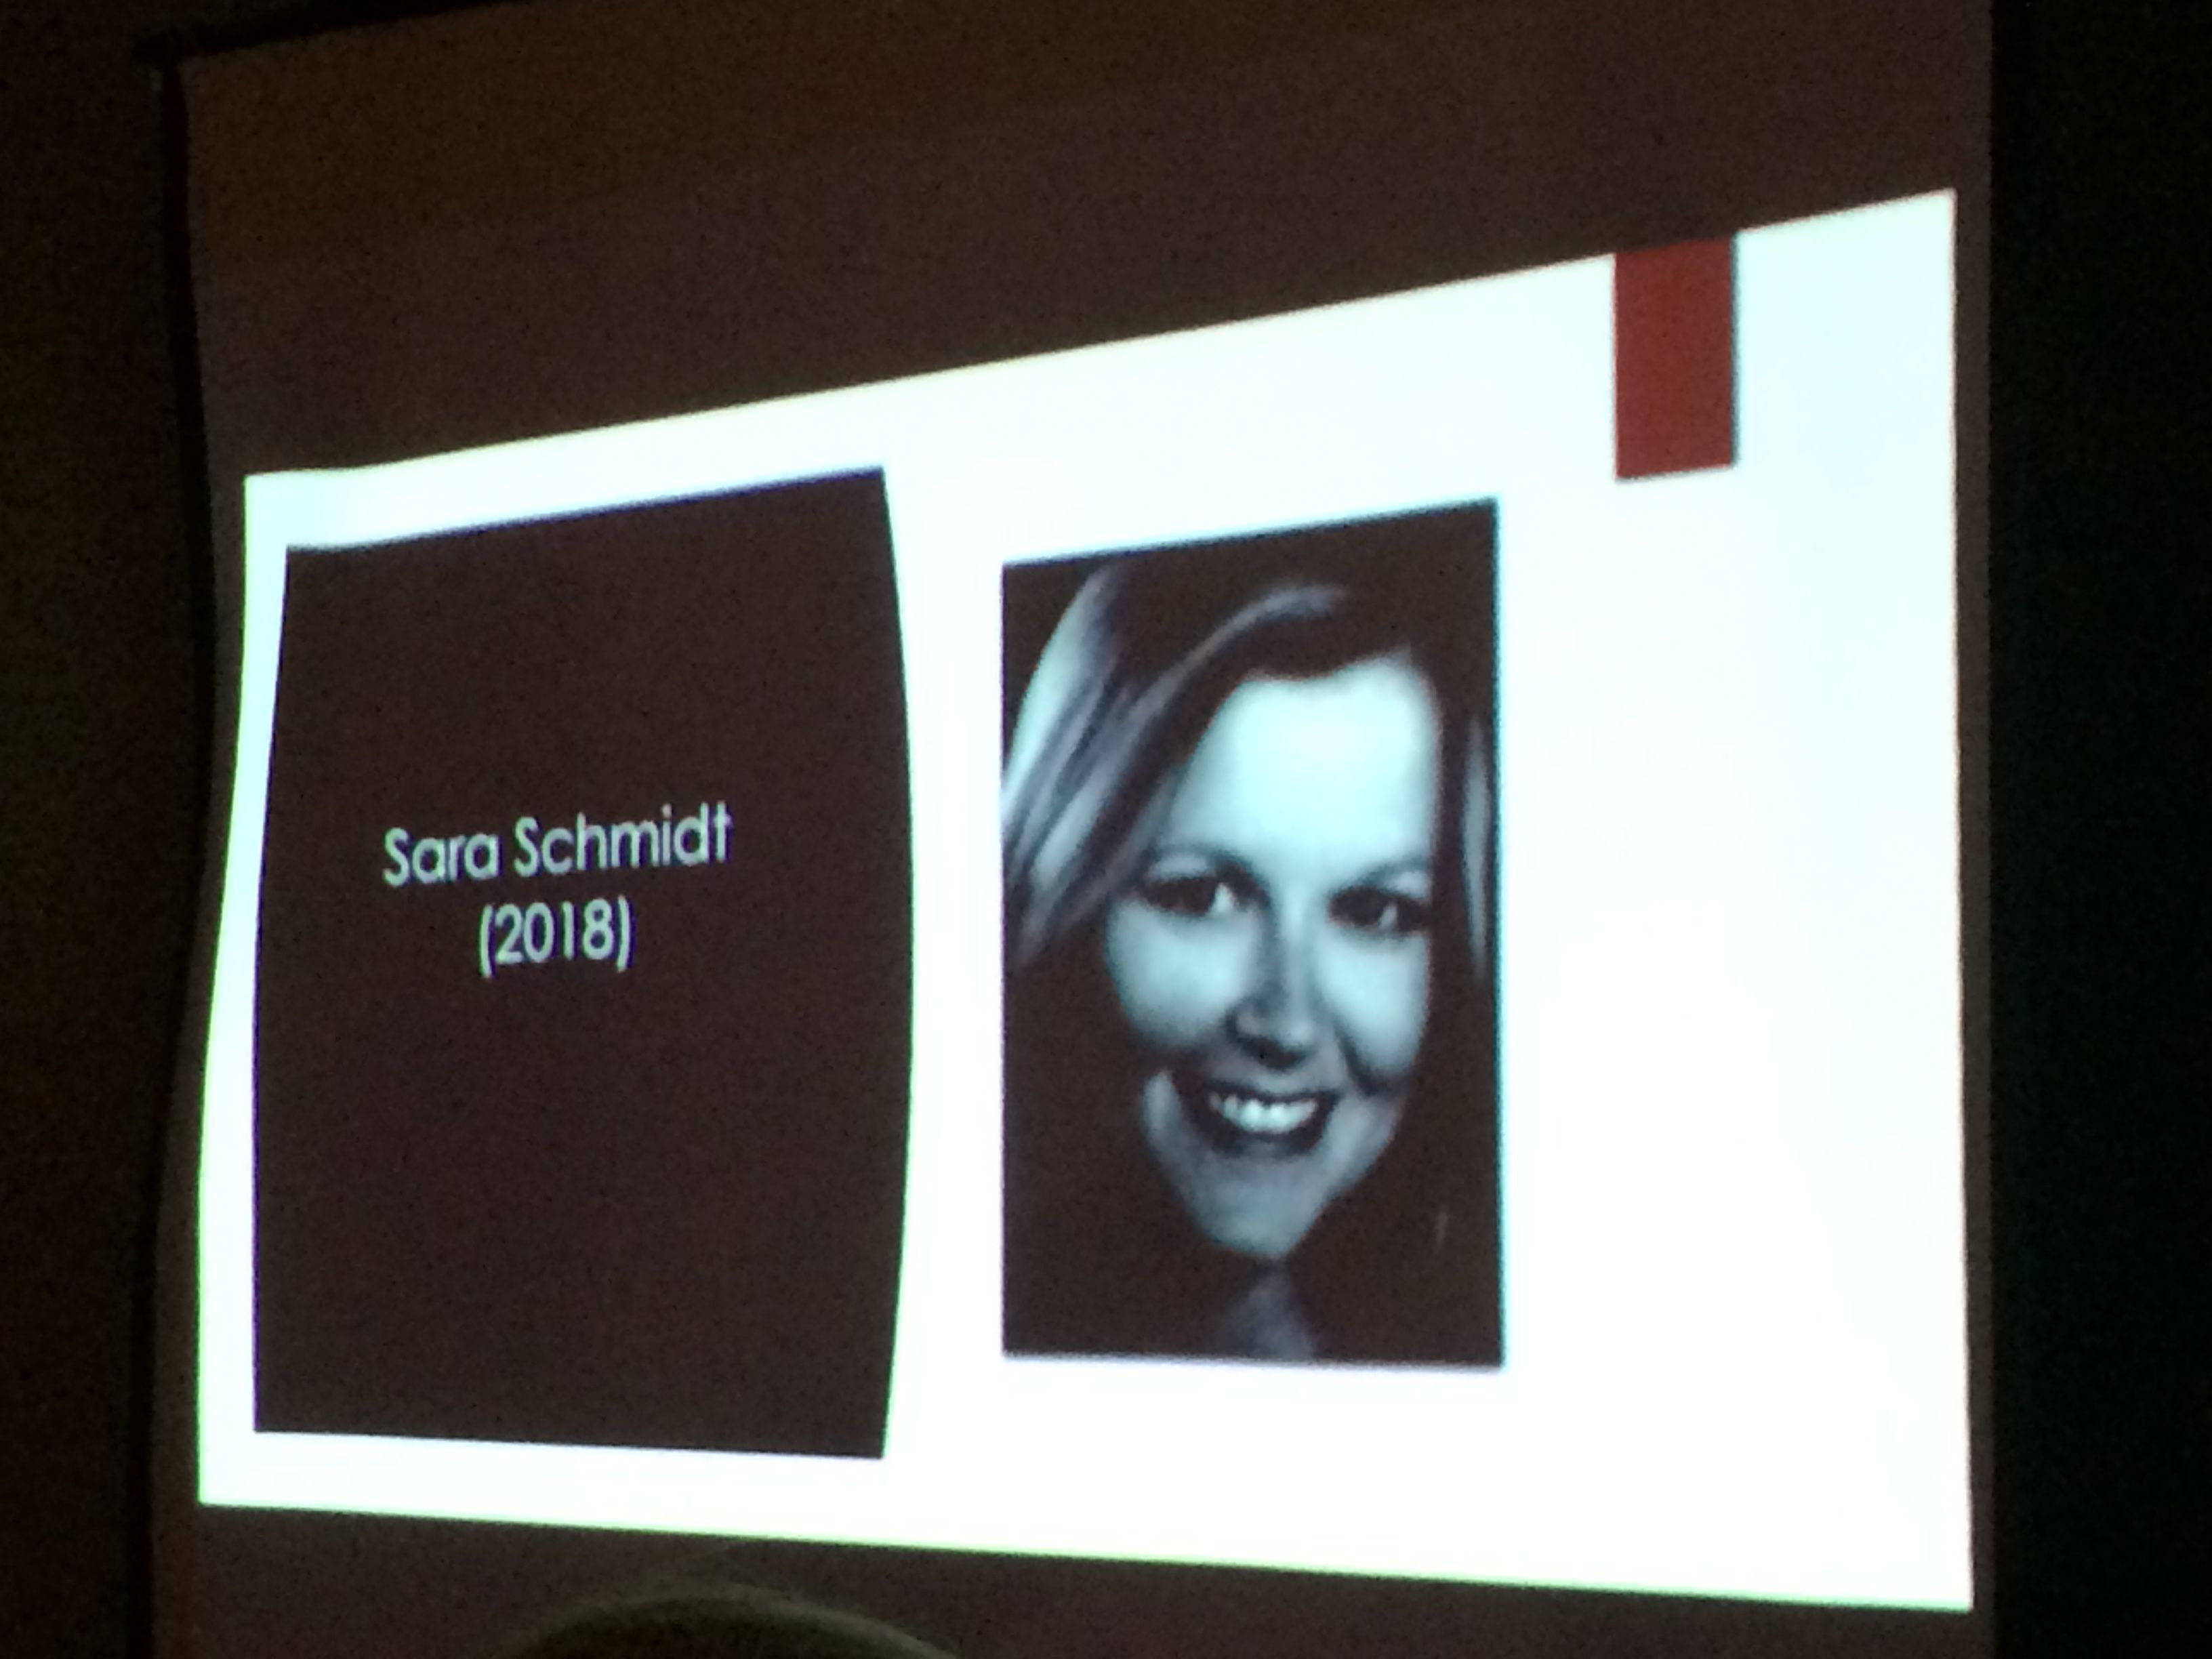 A slideshow shows an image of Sara Schmidt at a vigil. Schmidt was shot killed by her husband in 2018.